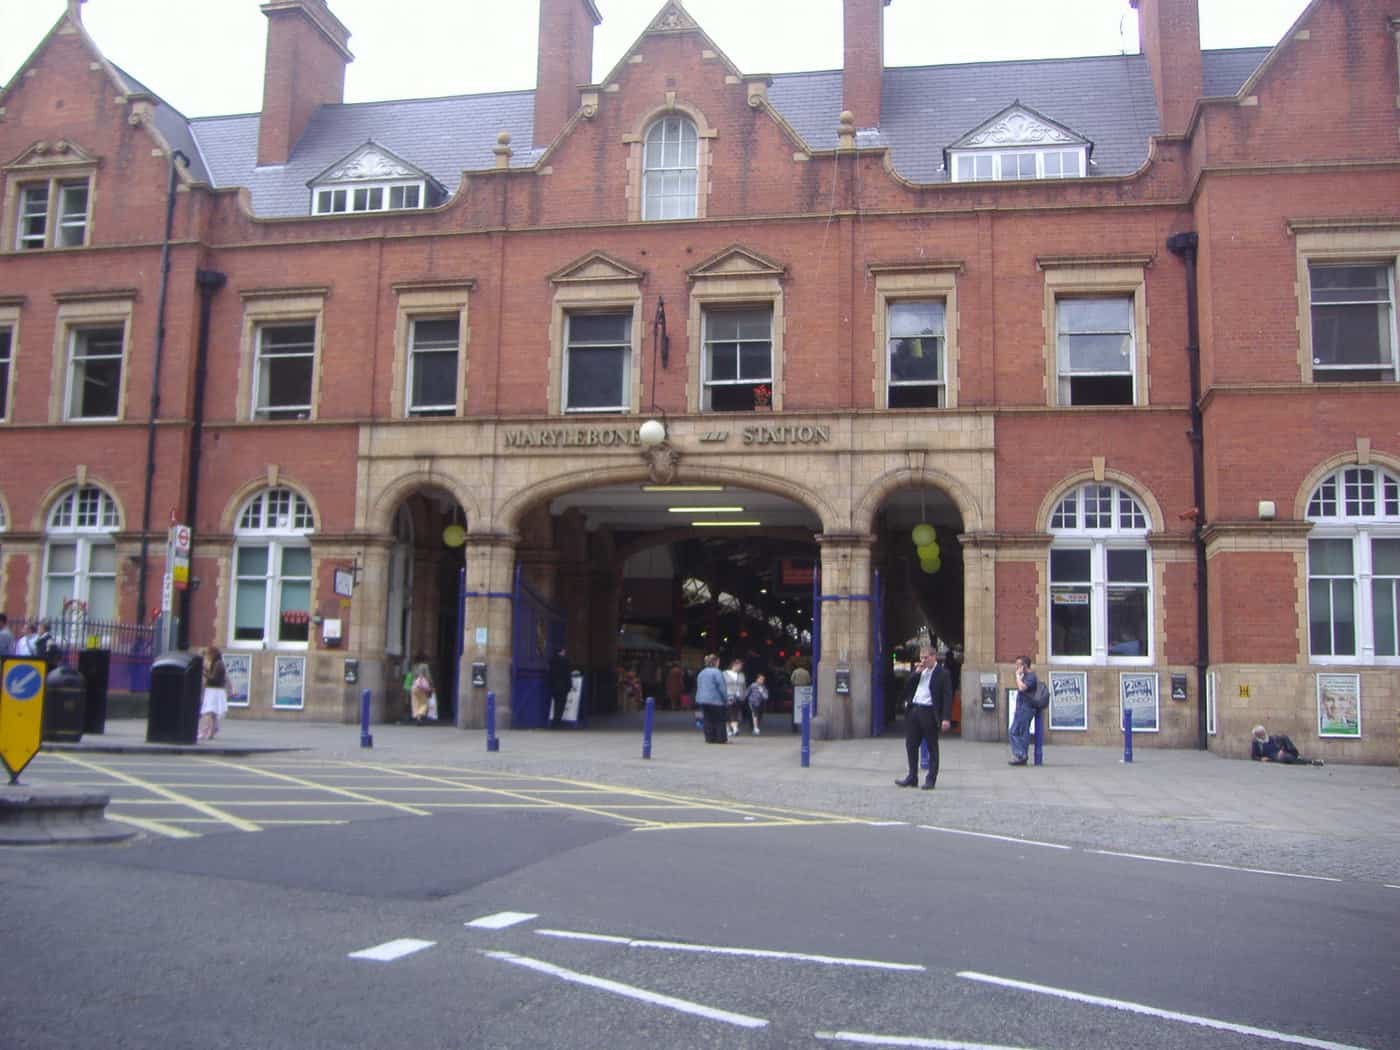 Image of Marylebone Station